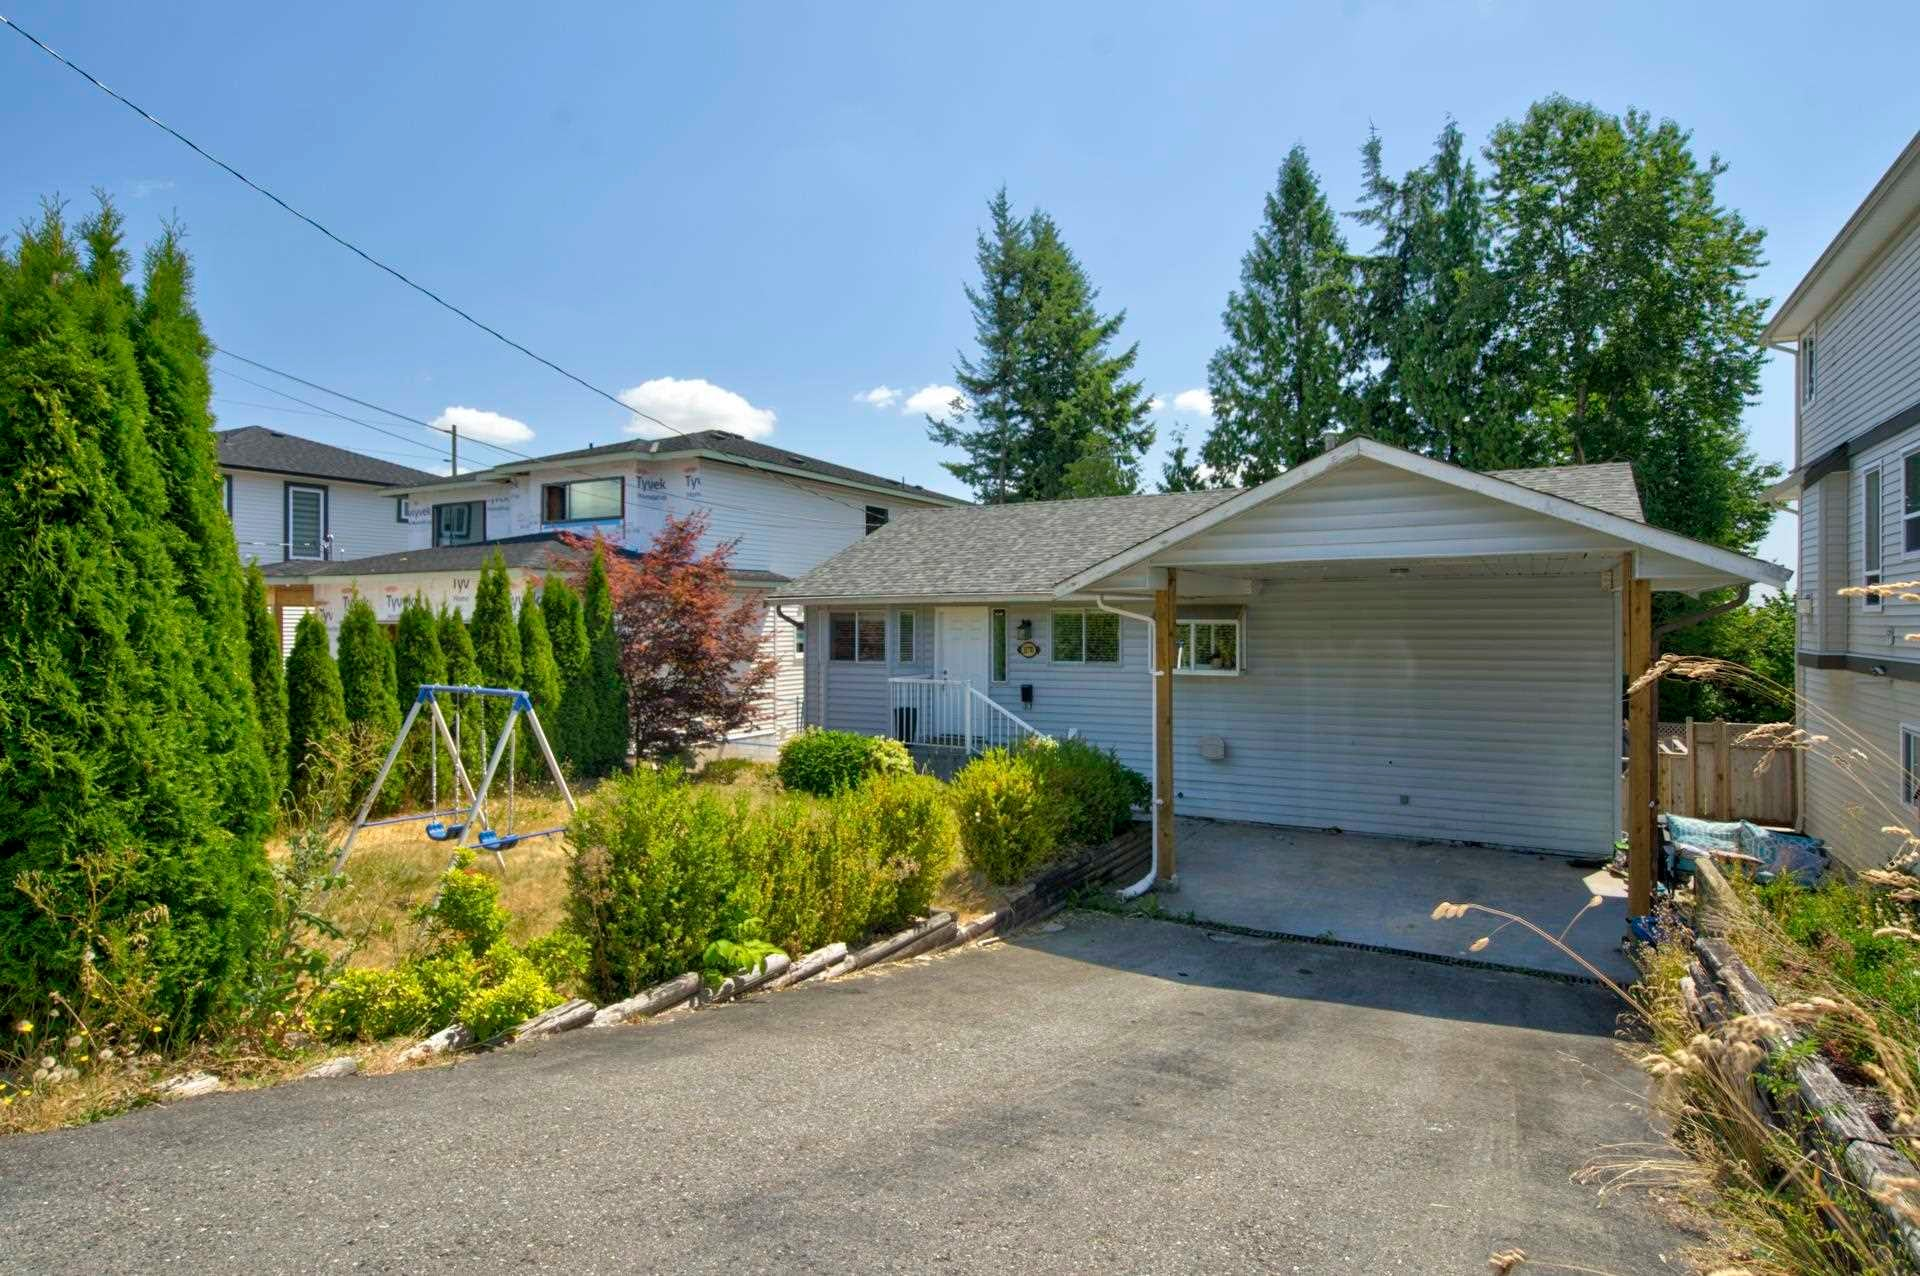 32770 BEST AVENUE - Mission BC House/Single Family for sale, 4 Bedrooms (R2603418) - #1